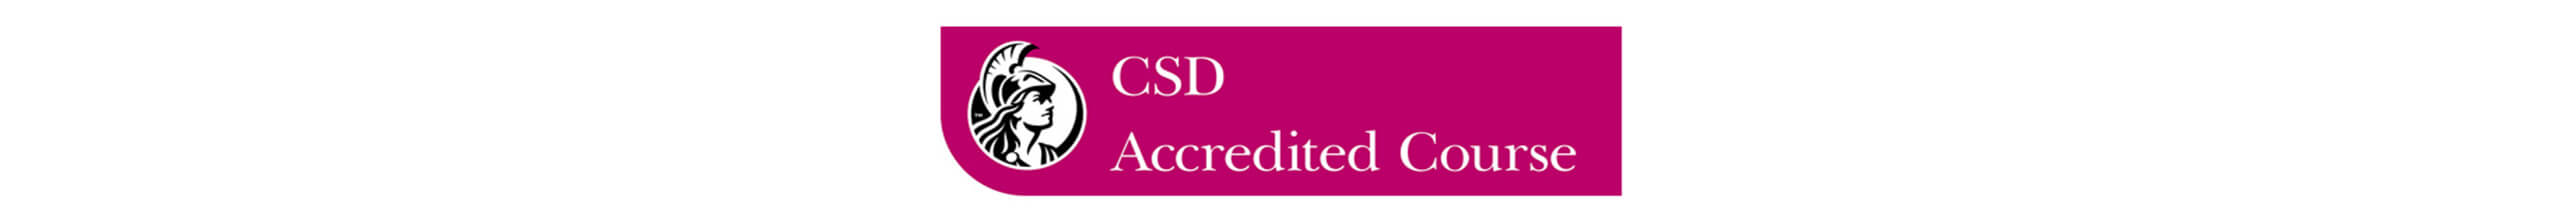 The Chartered Society of Designers logo.